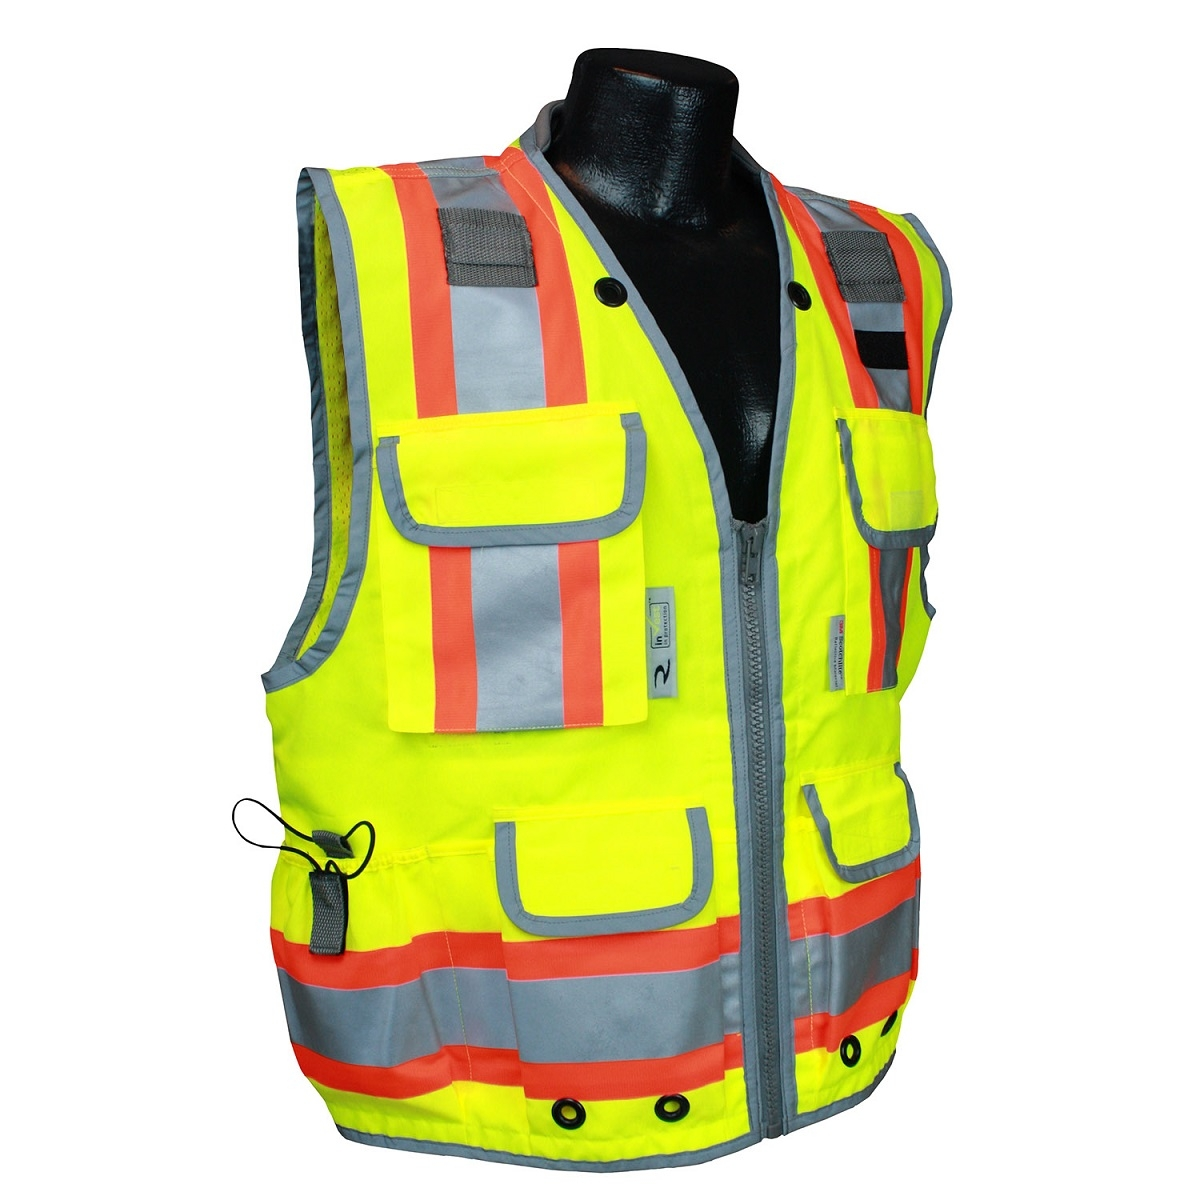 Radians Heavy Duty Two Tone Engineer Safety Vest